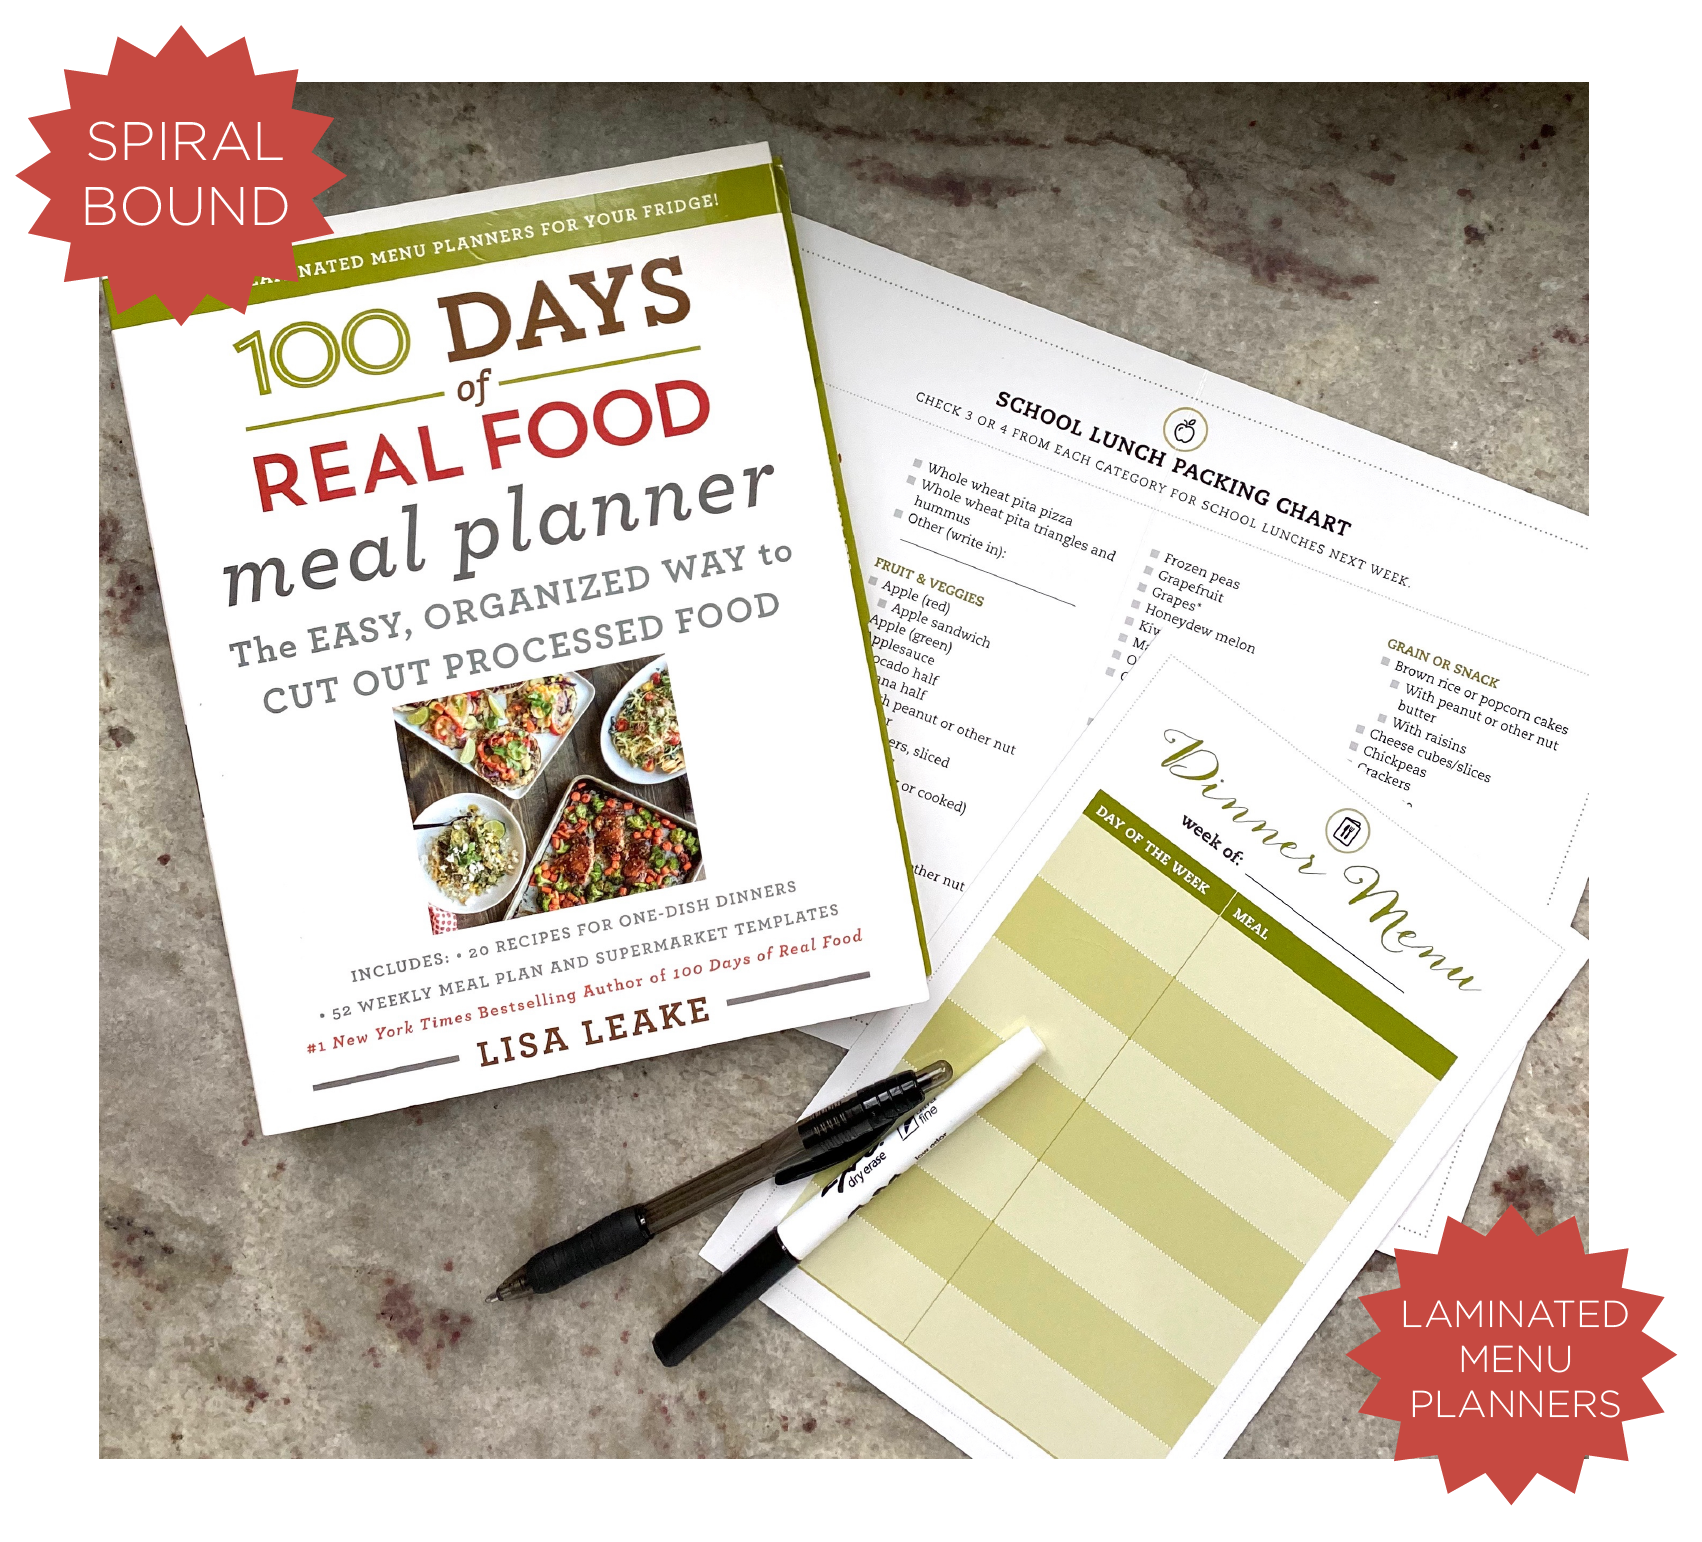 Meal Planner Template on 100 Days of Real Food